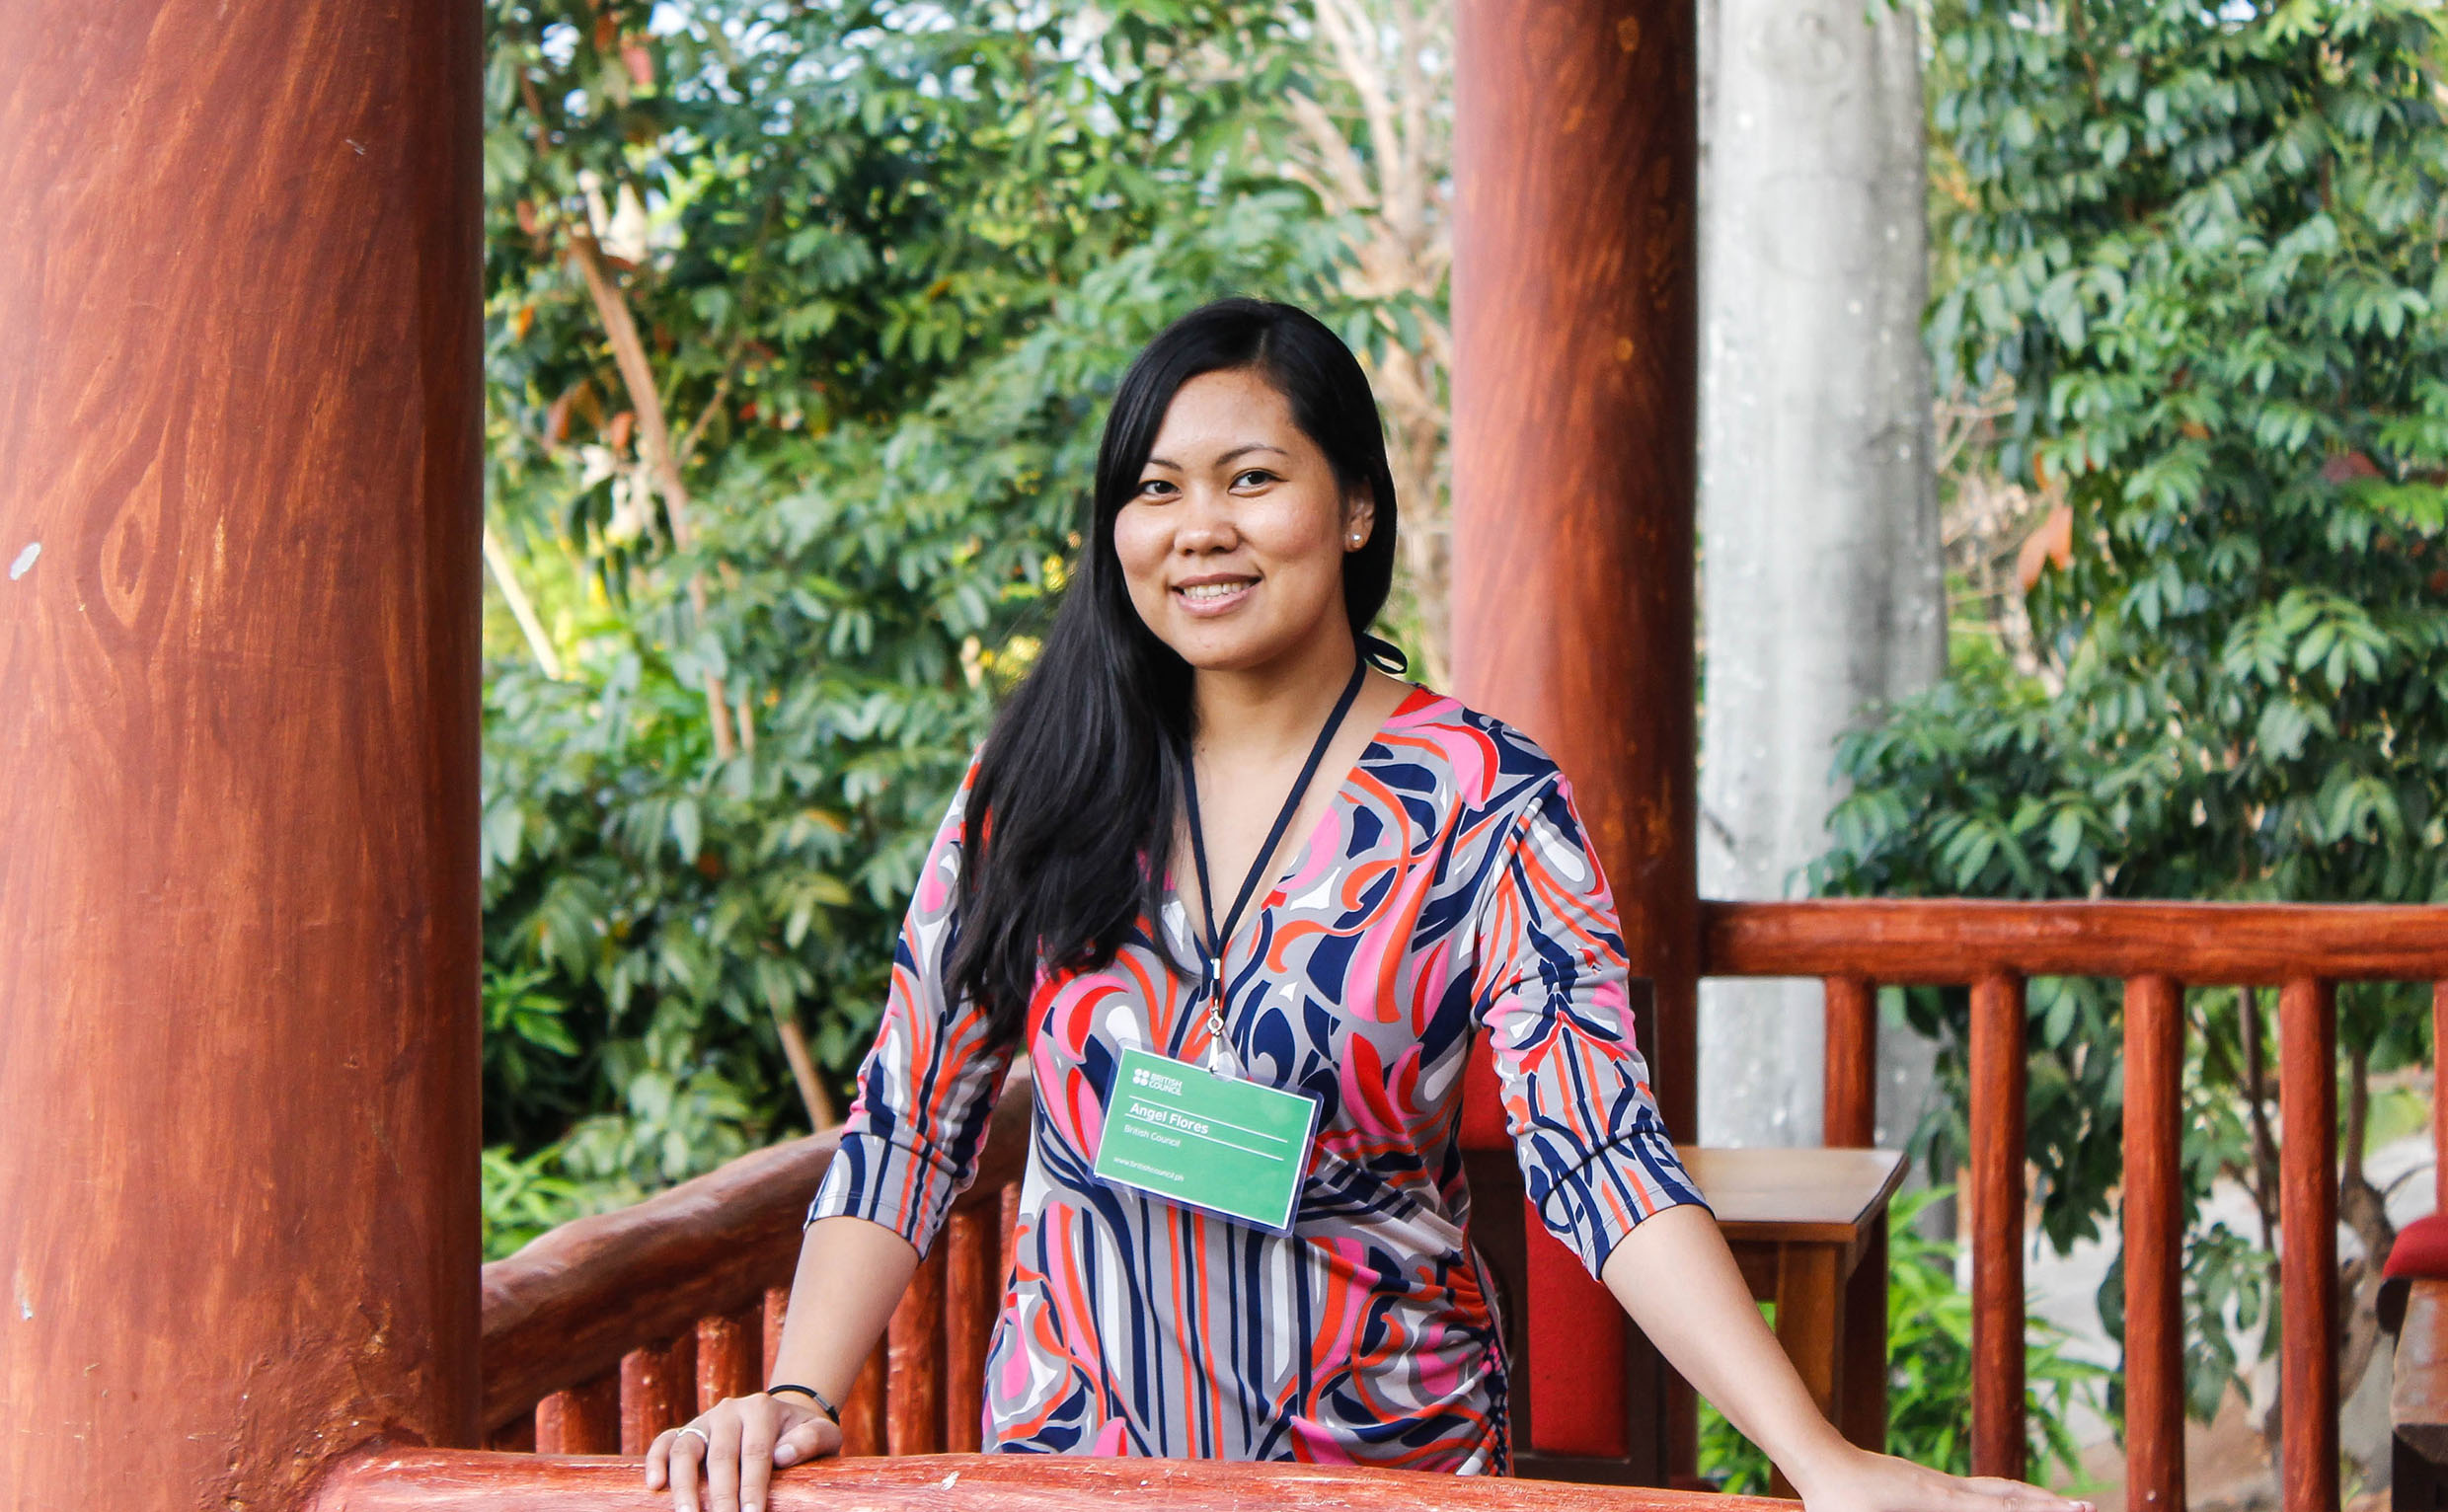 DevCom alumna is New Obama Foundation Asia-Pacific Leader